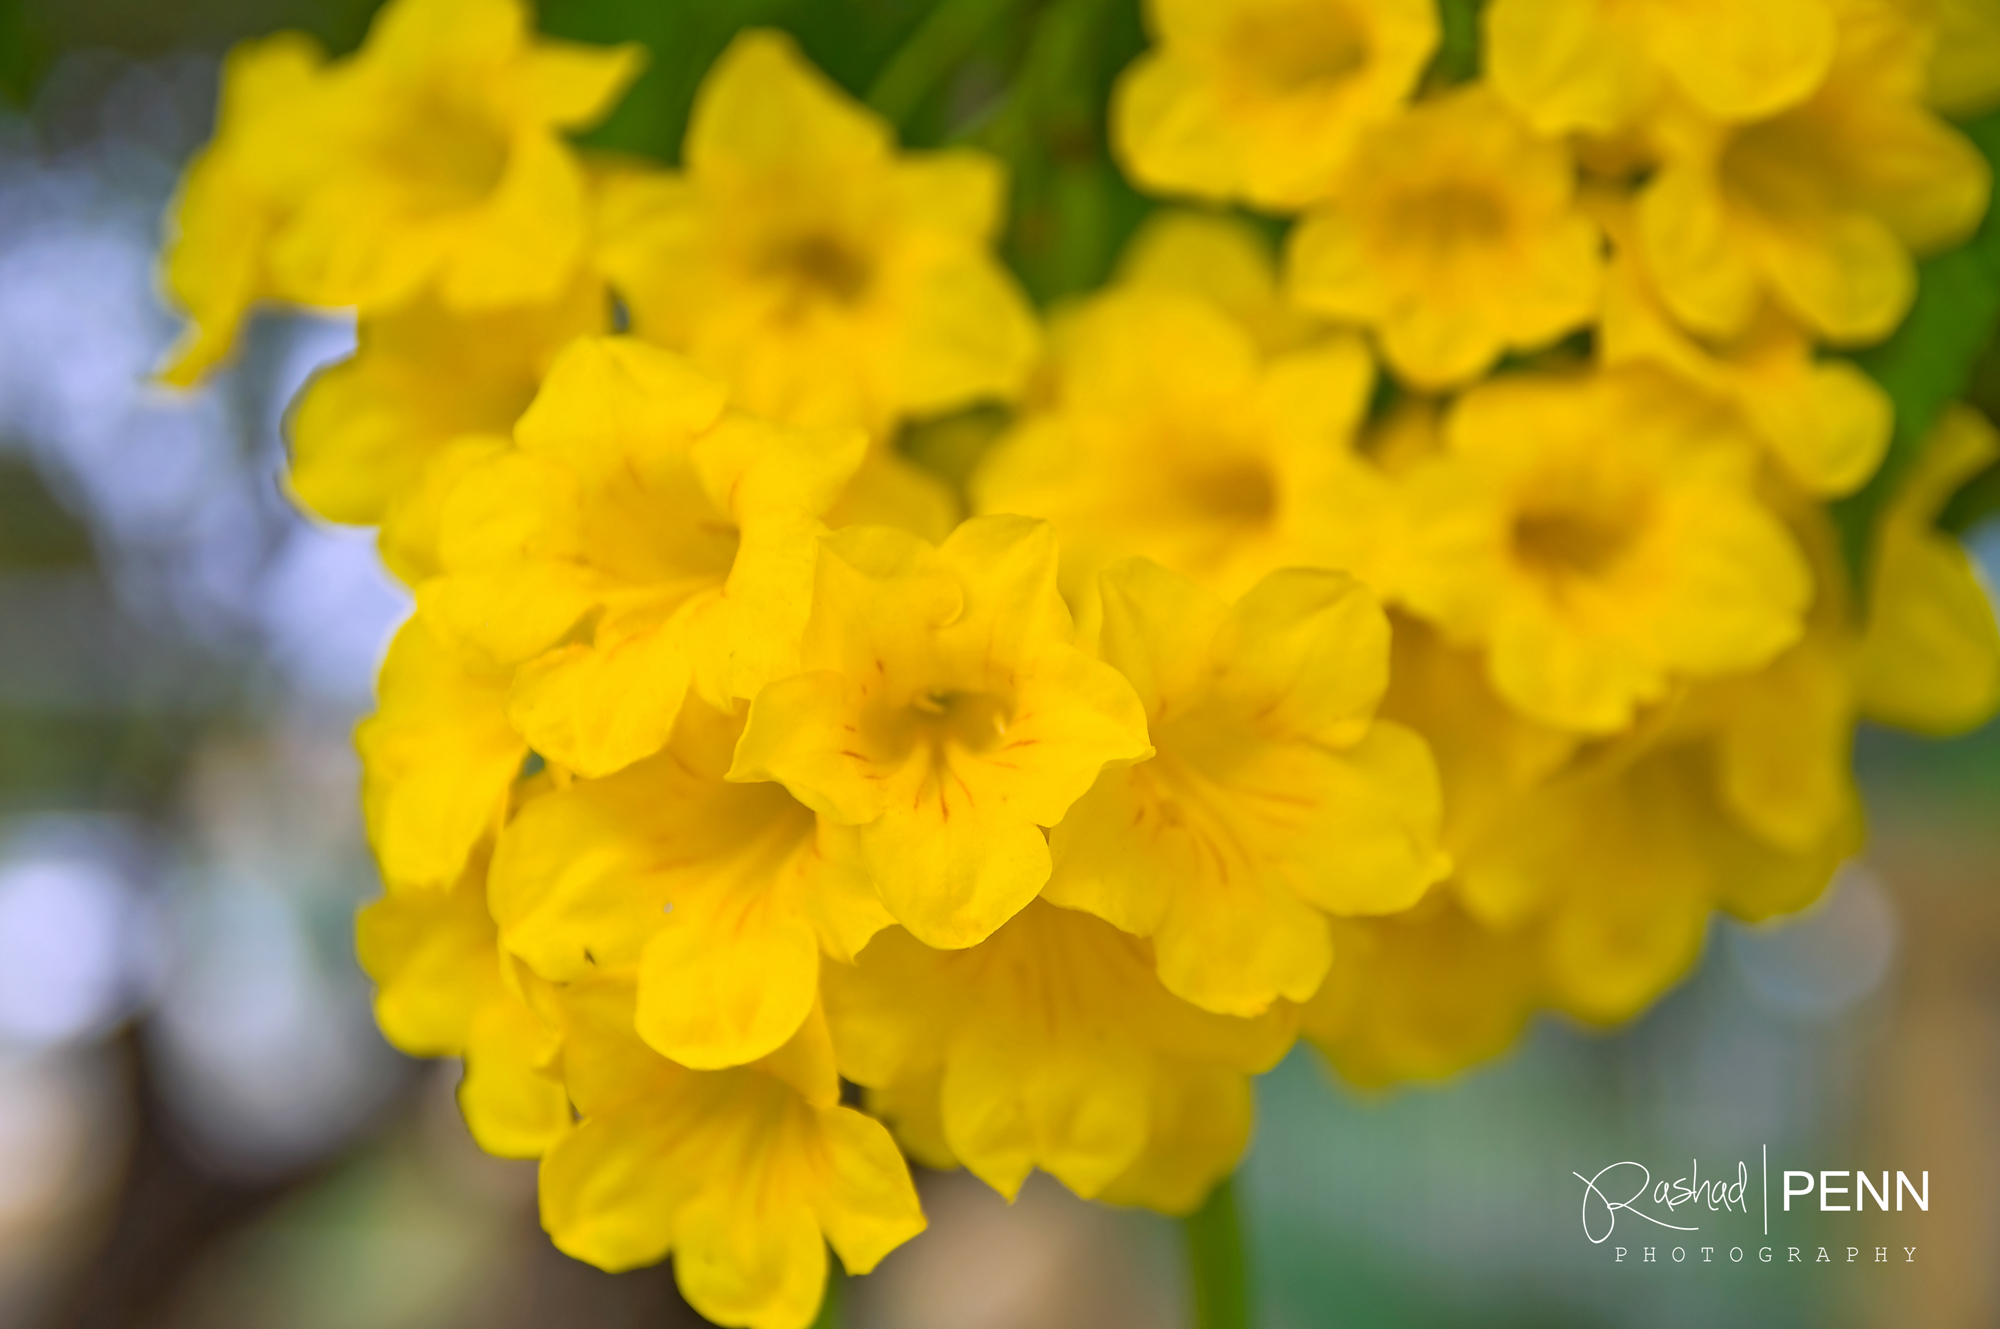 Yellow flowers names 3 cool hd wallpaper hdflowerwallpaper yellow flowers names free wallpaper mightylinksfo Image collections